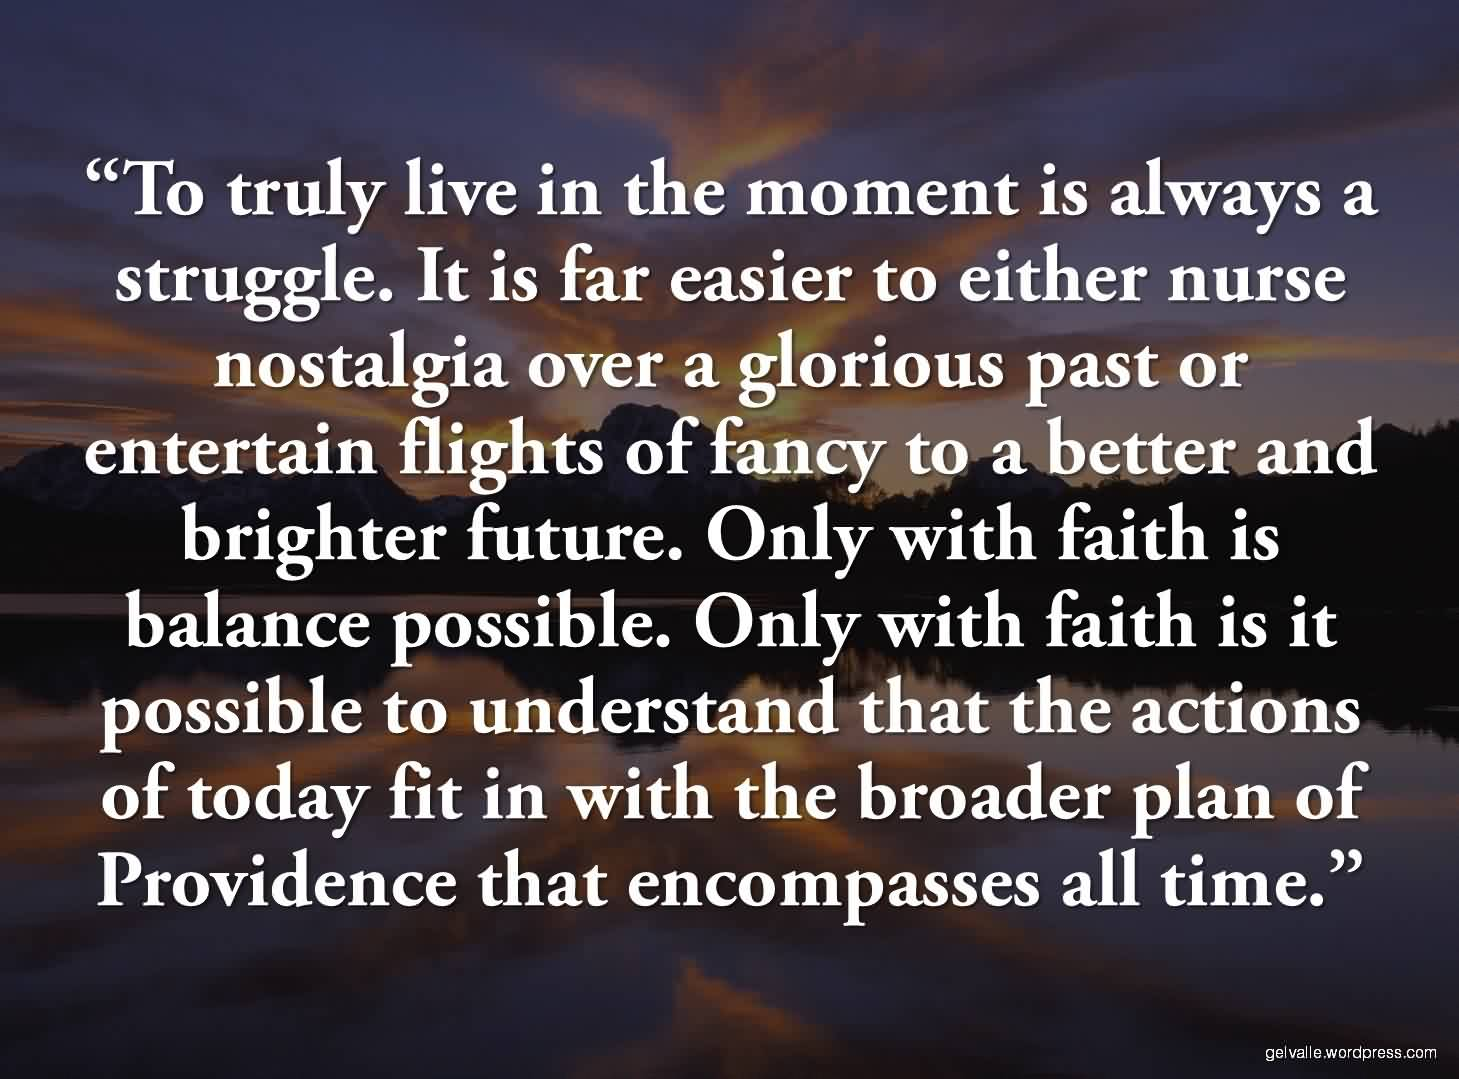 Brilliant Church Quote ~ To Truly Live in the moment is always a struggle.